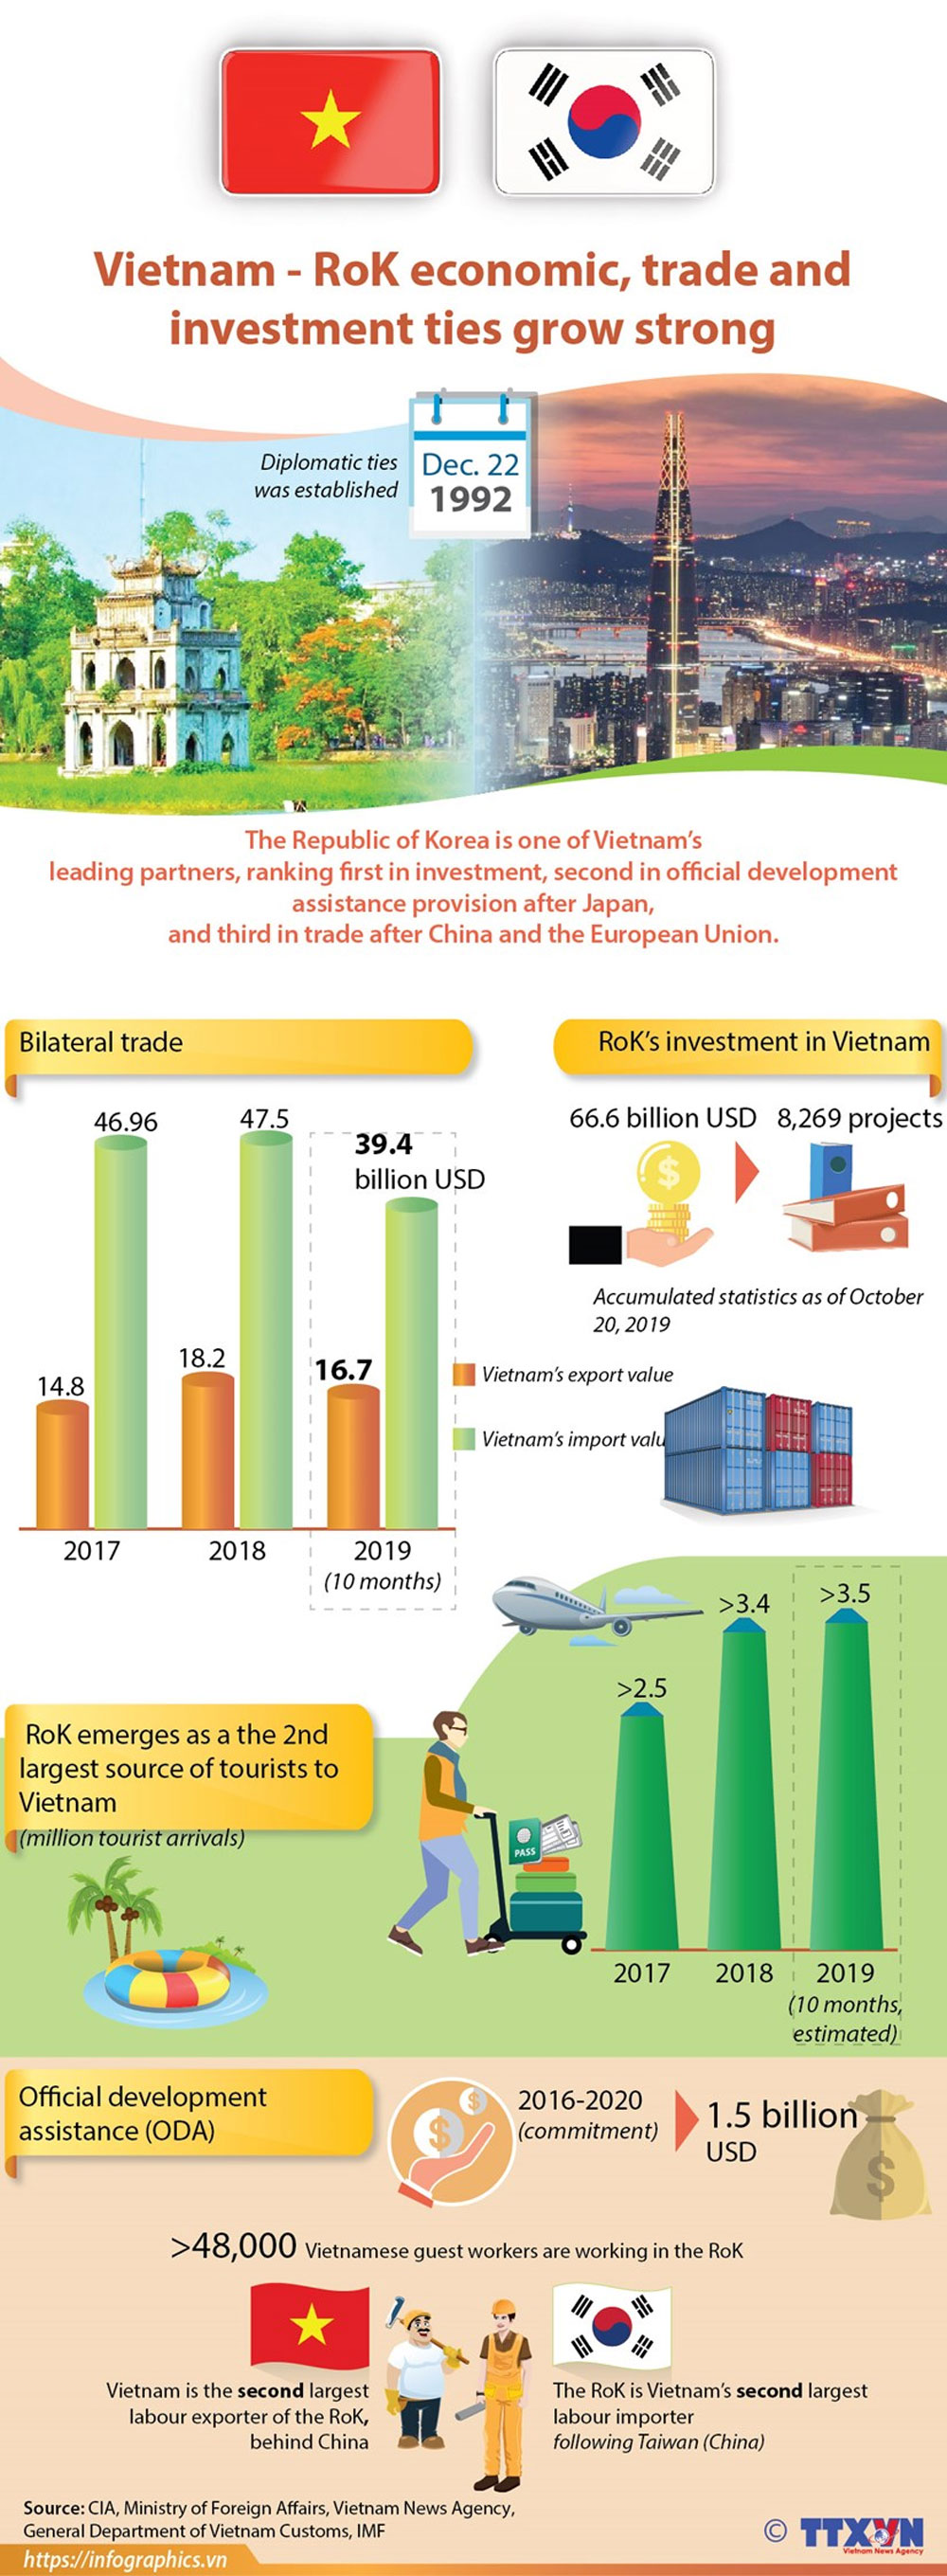 Vietnam - RoK,  economic, trade and investment ties, Republic of Korea, leading partners, official development assistance